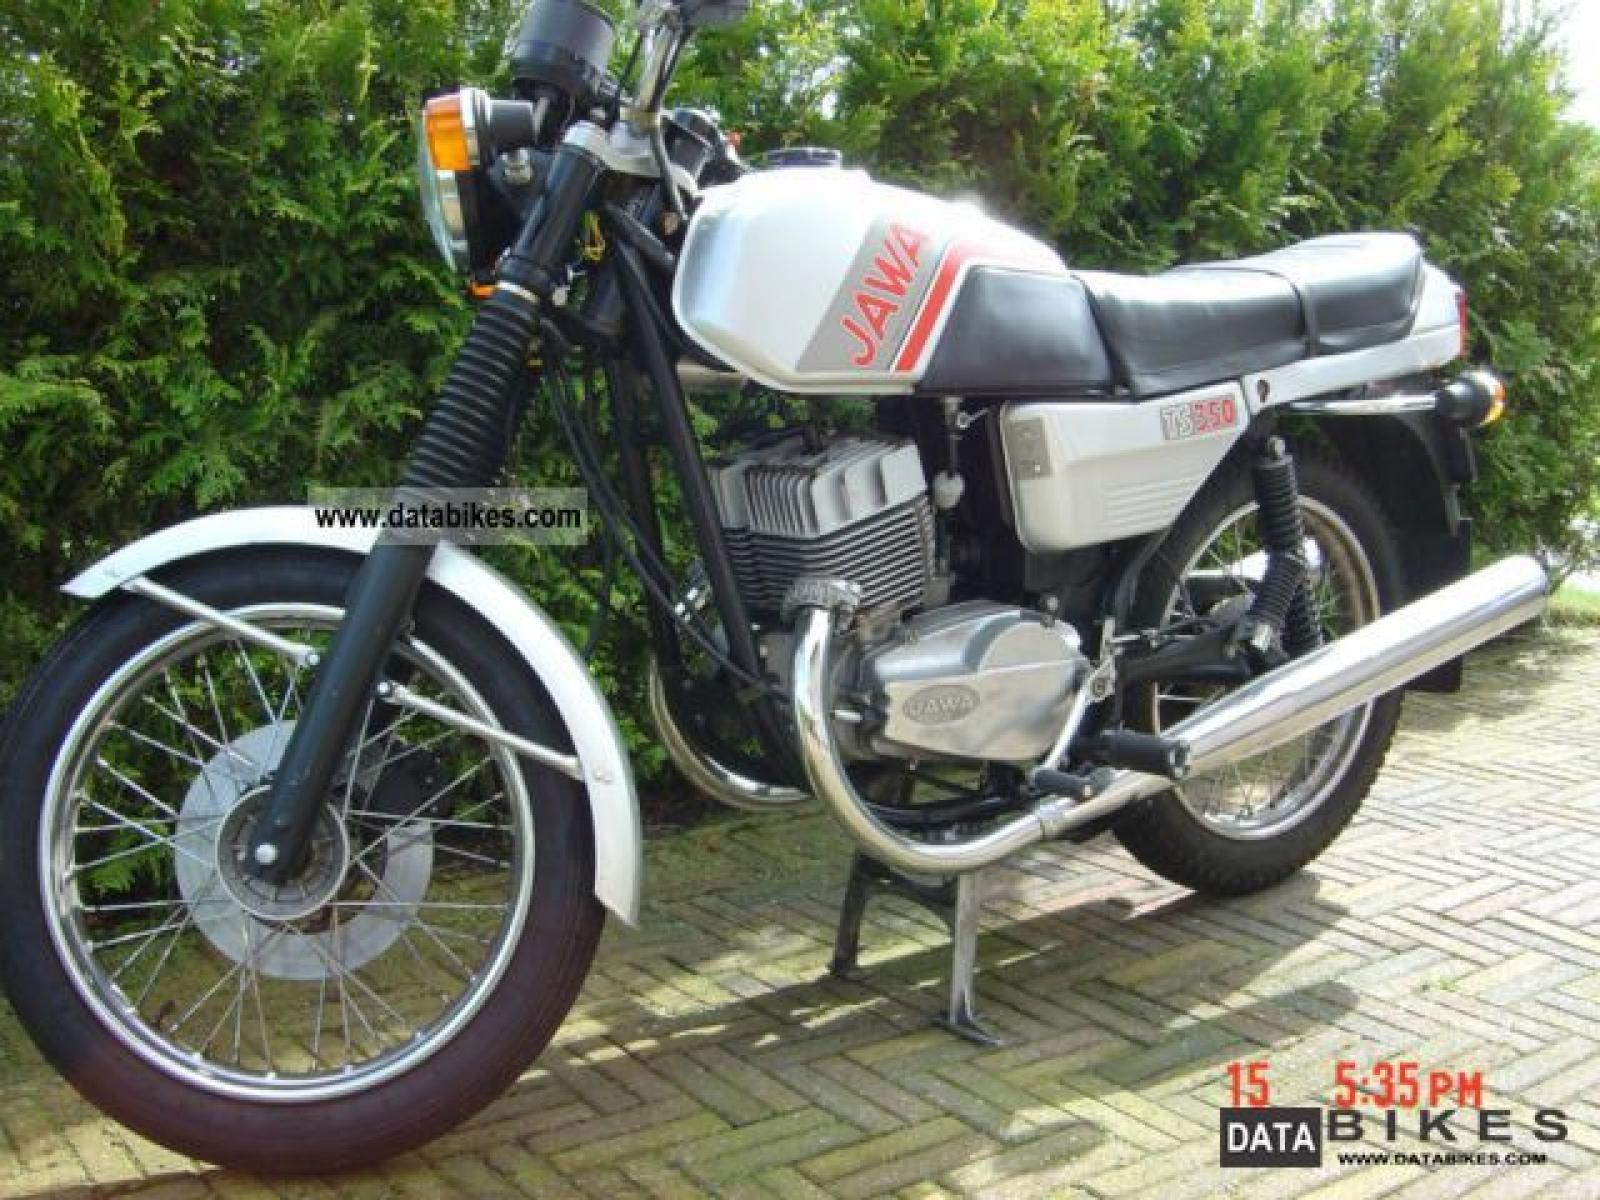 1991 jawa 350 ts pics specs and information. Black Bedroom Furniture Sets. Home Design Ideas